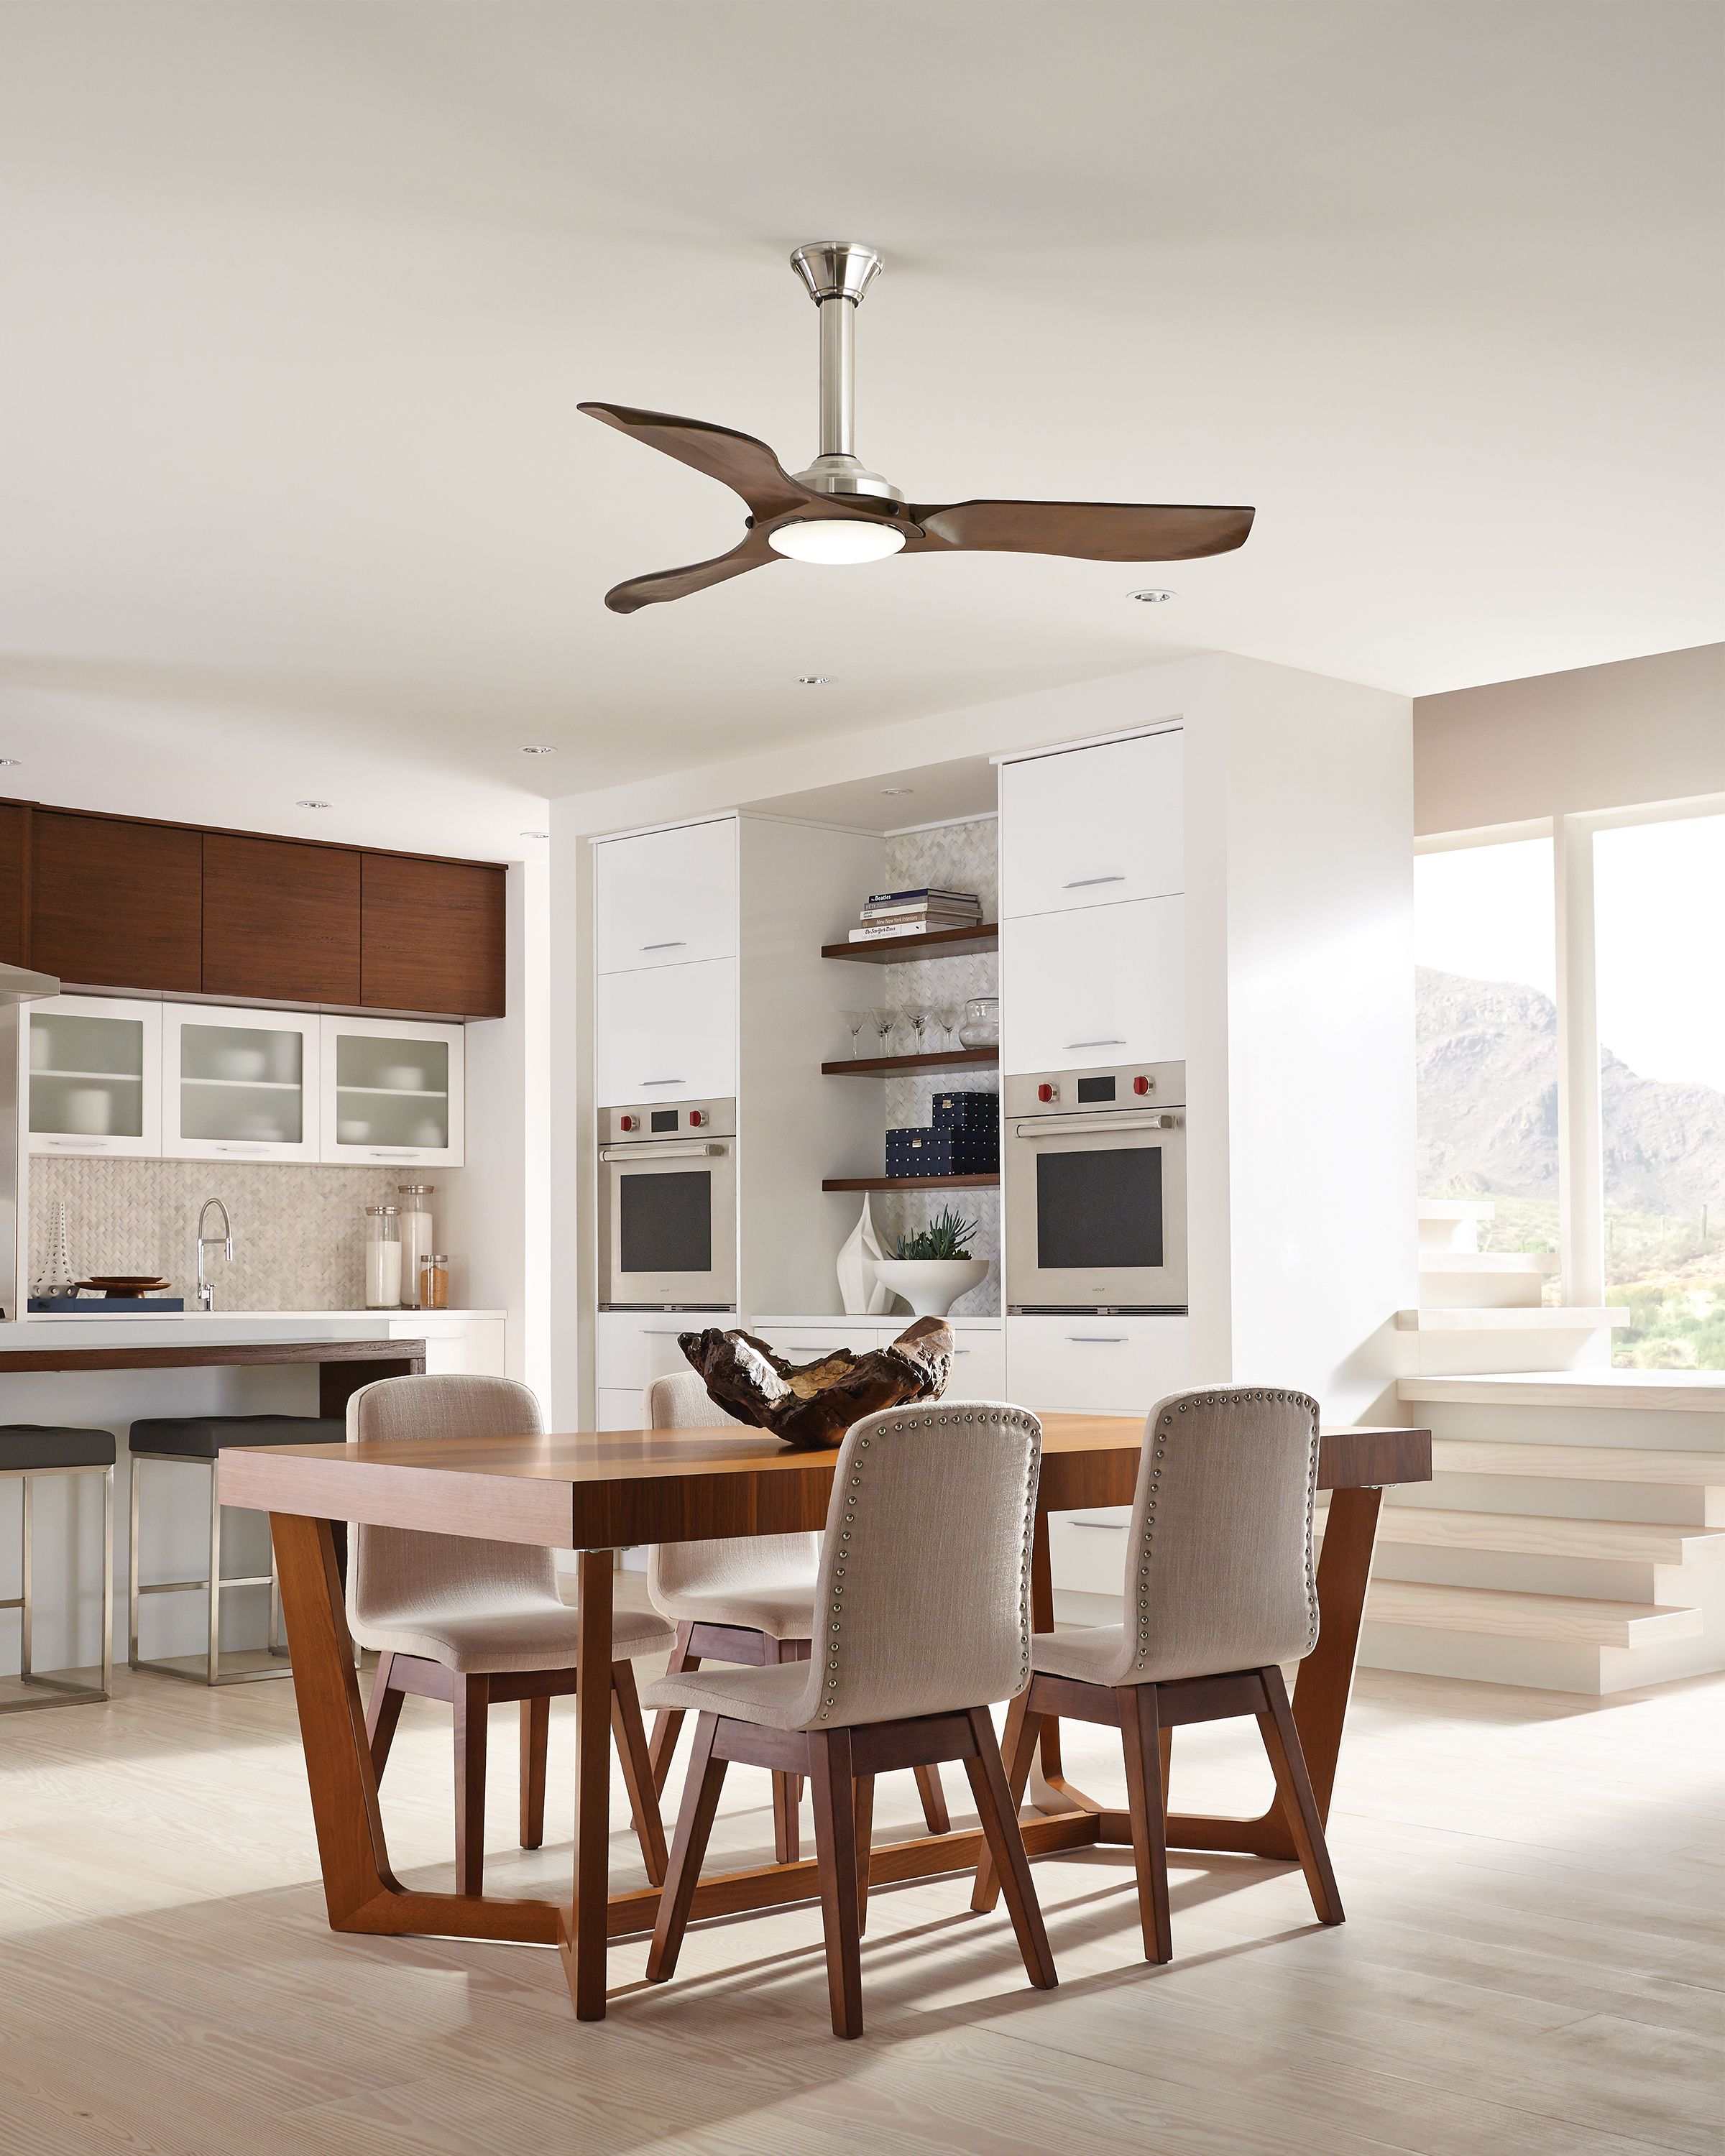 How To Choose A Ceiling Fan Size Guide, Blades & Airflow